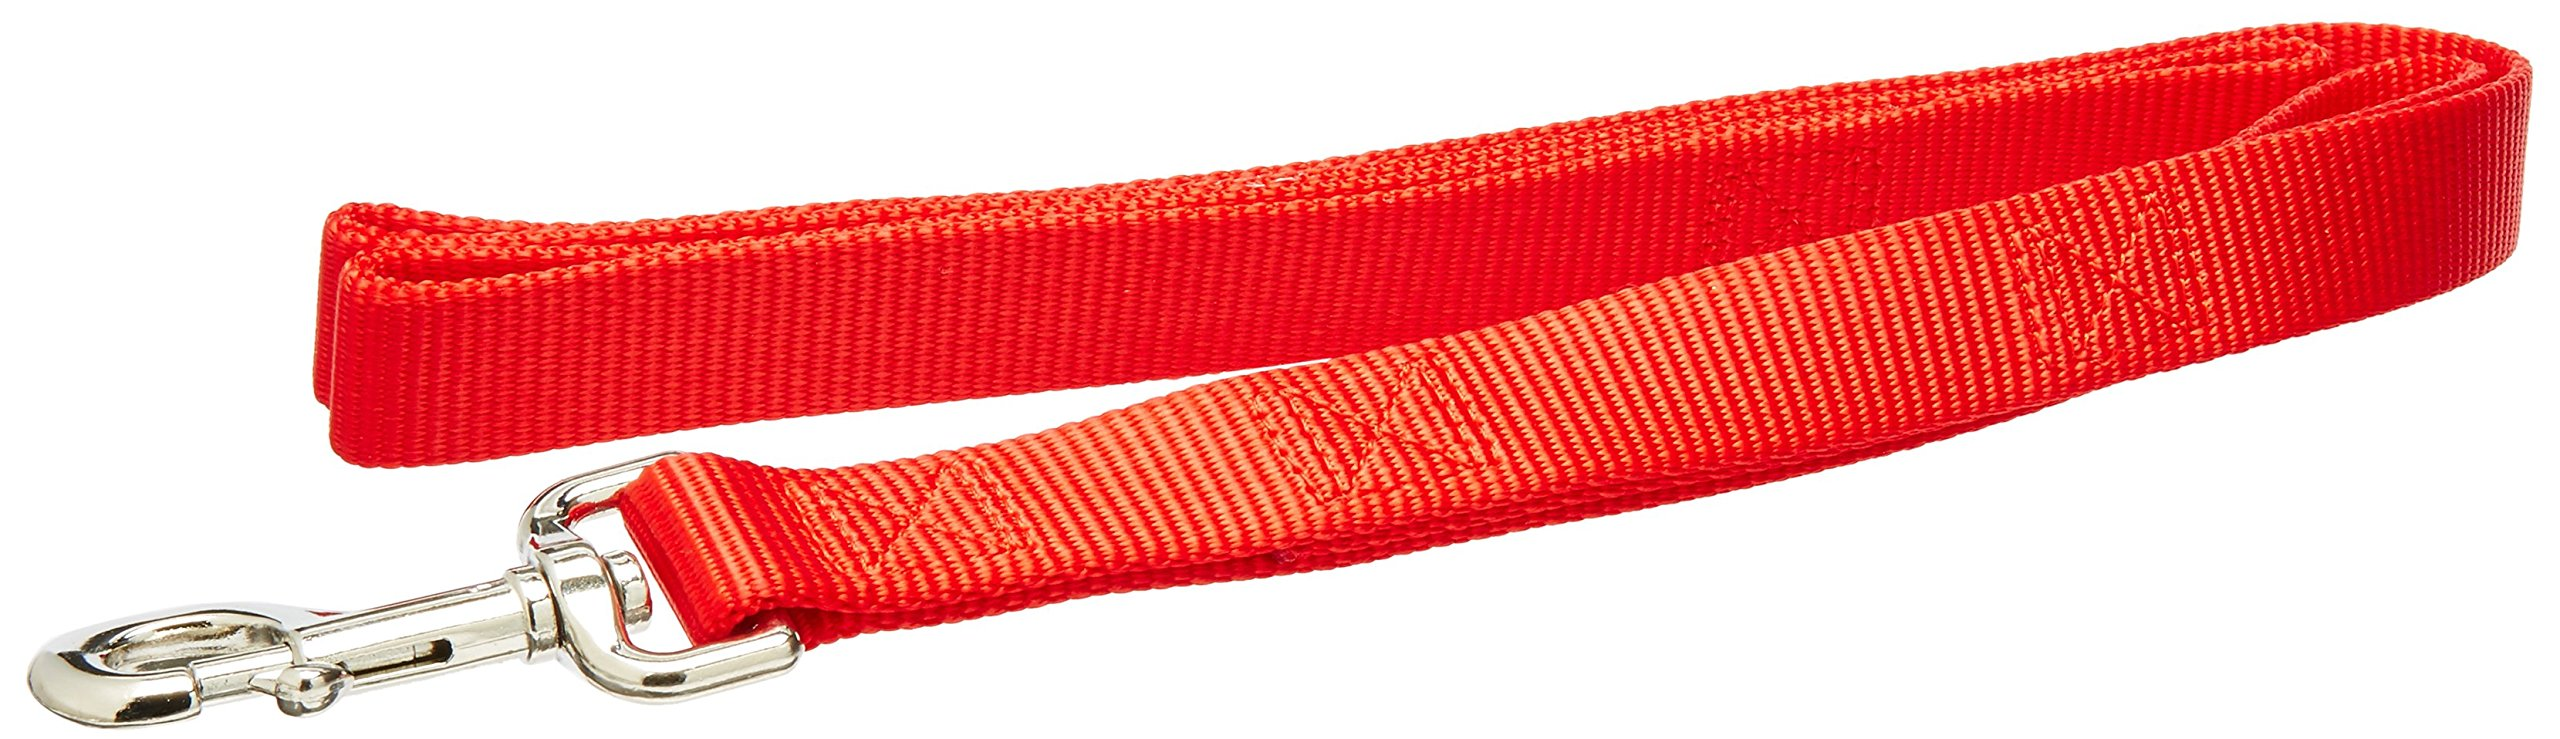 Coastal Pet Products DCP904HRED Nylon Loops 2 Double Handle Dog Leash, 1-Inch by 4-Feet, Red